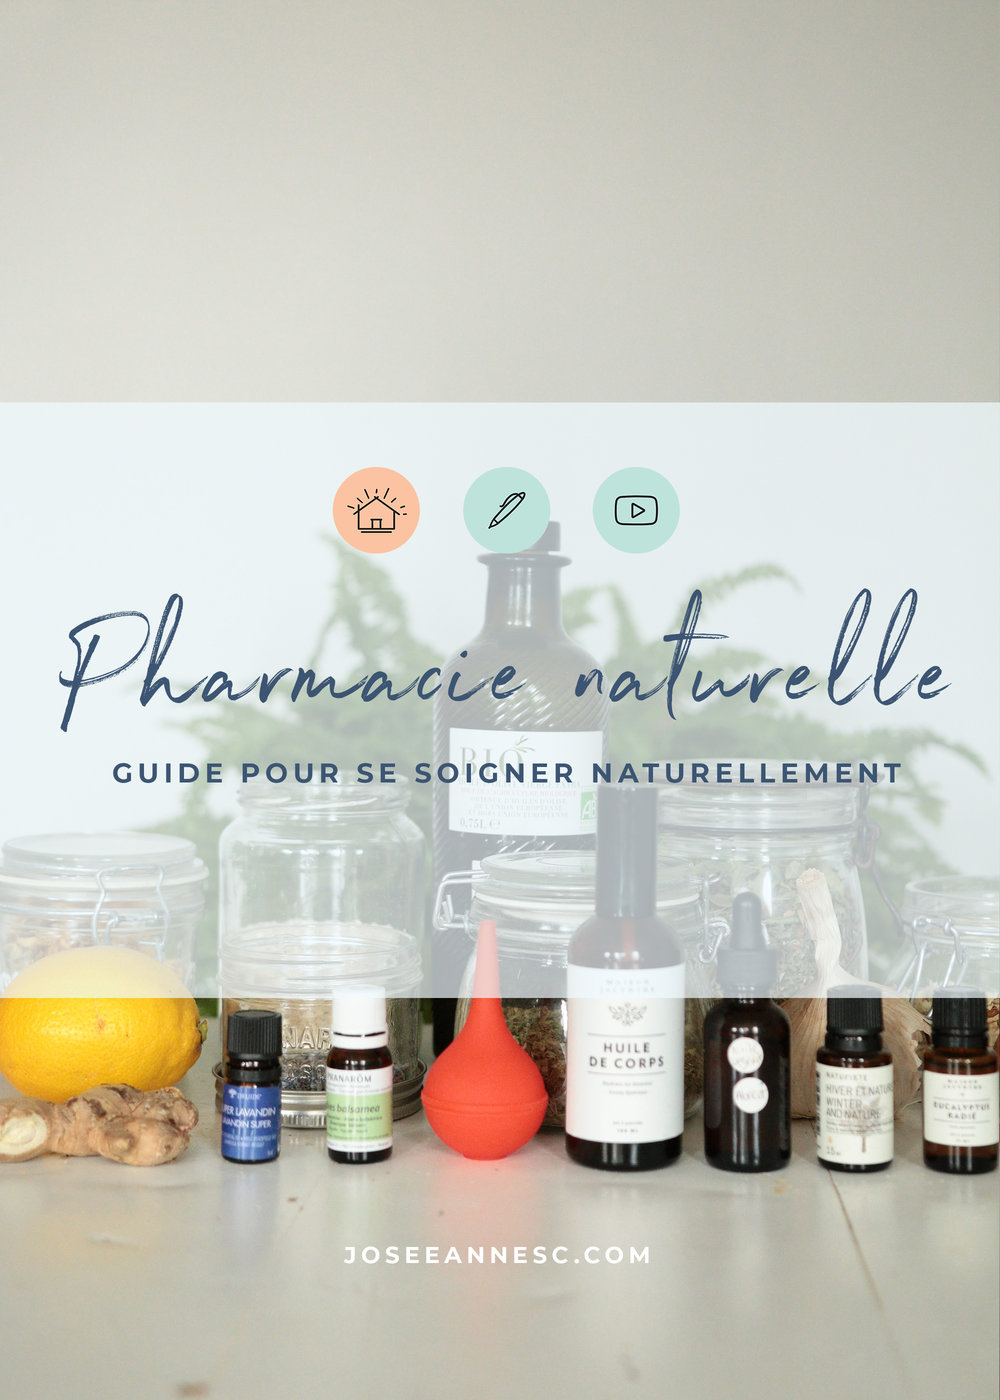 PHARMACIE NATURELLE.jpg